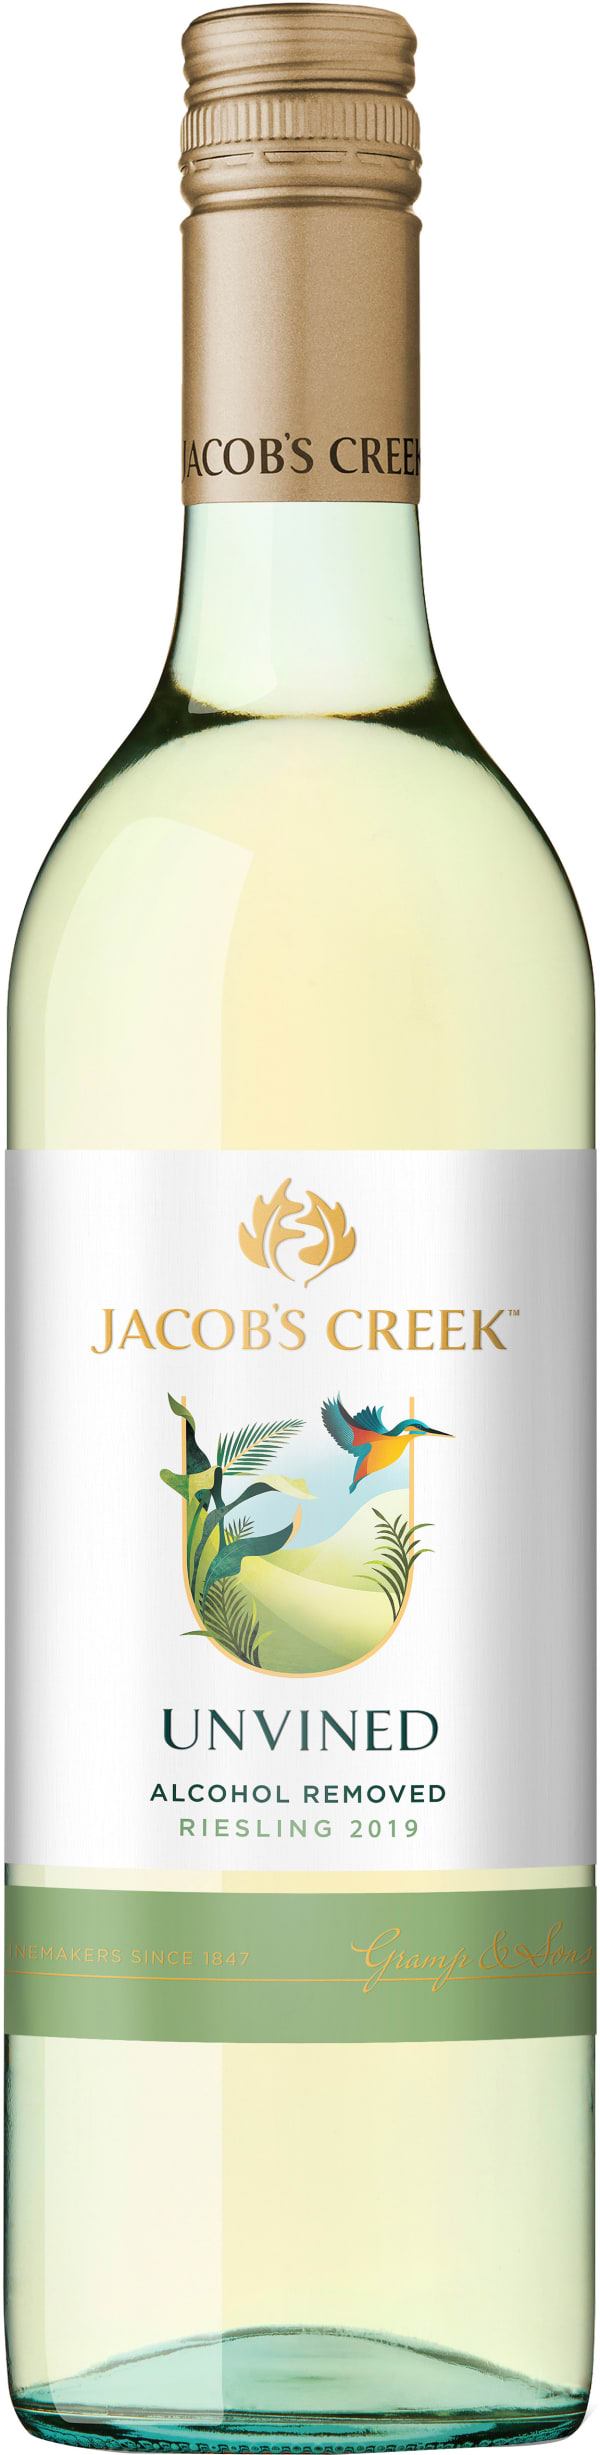 Jacob's Creek UnVined Riesling 2018